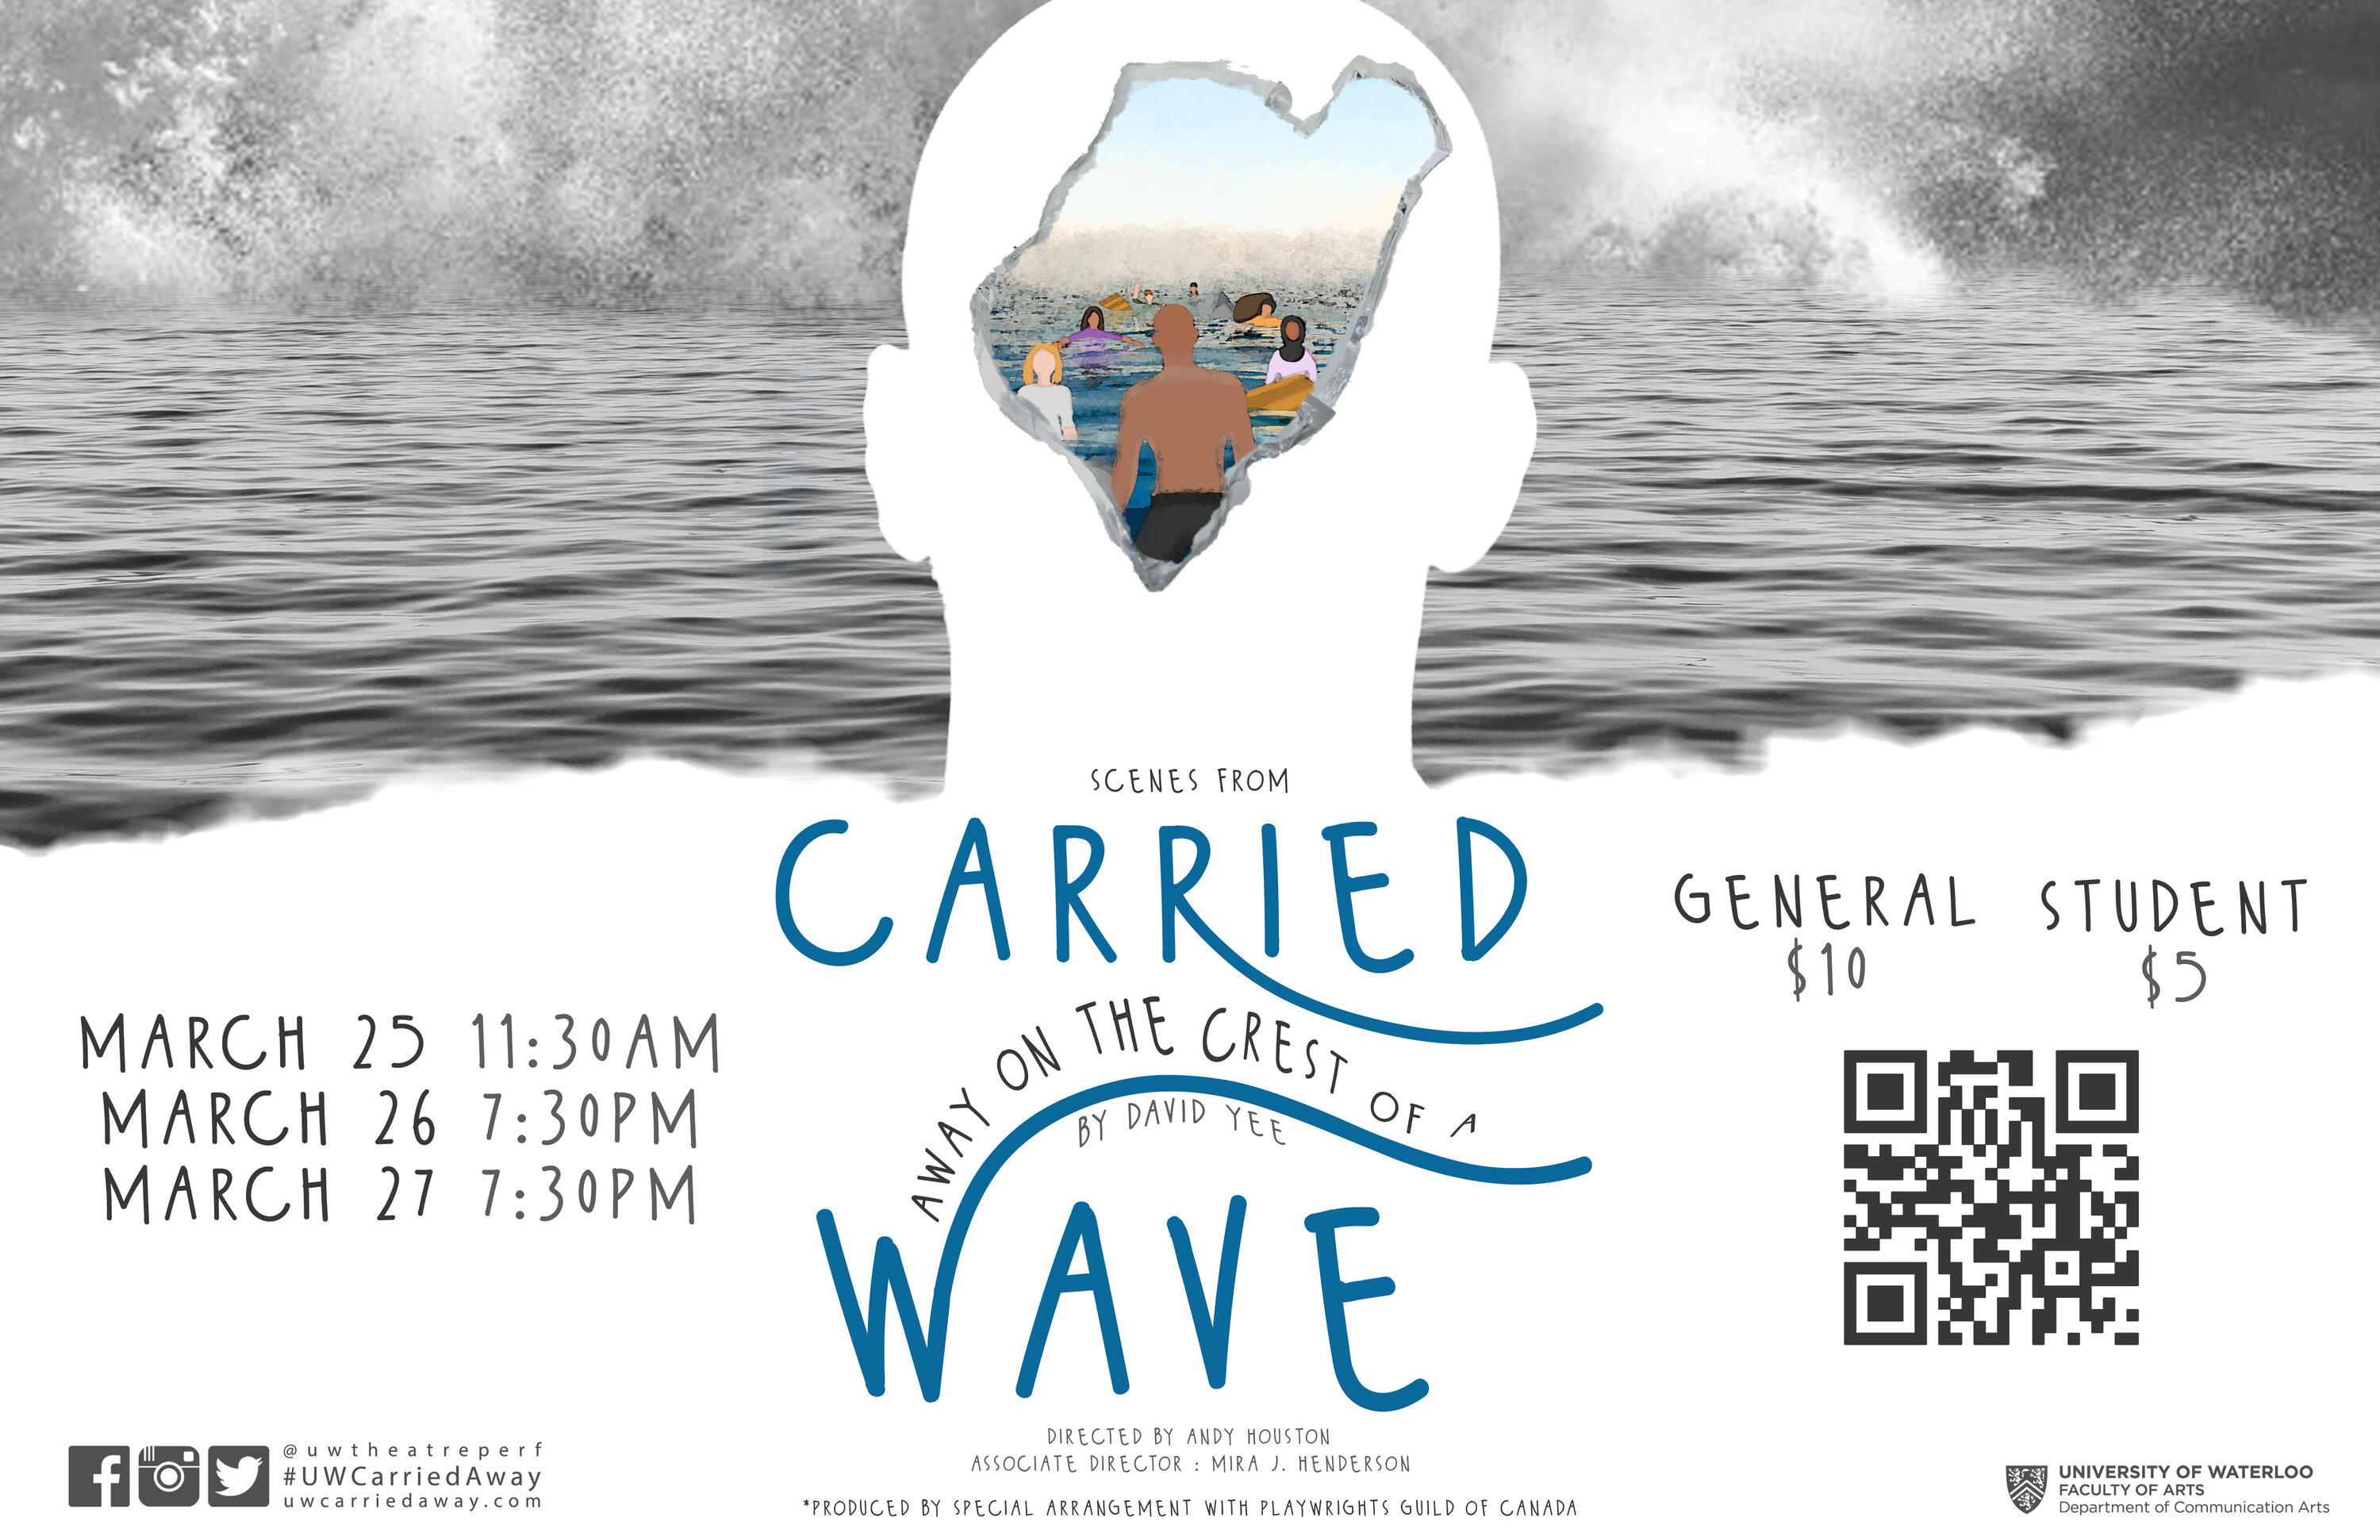 Scenes from 'carried away on the crest of a wave' official poster